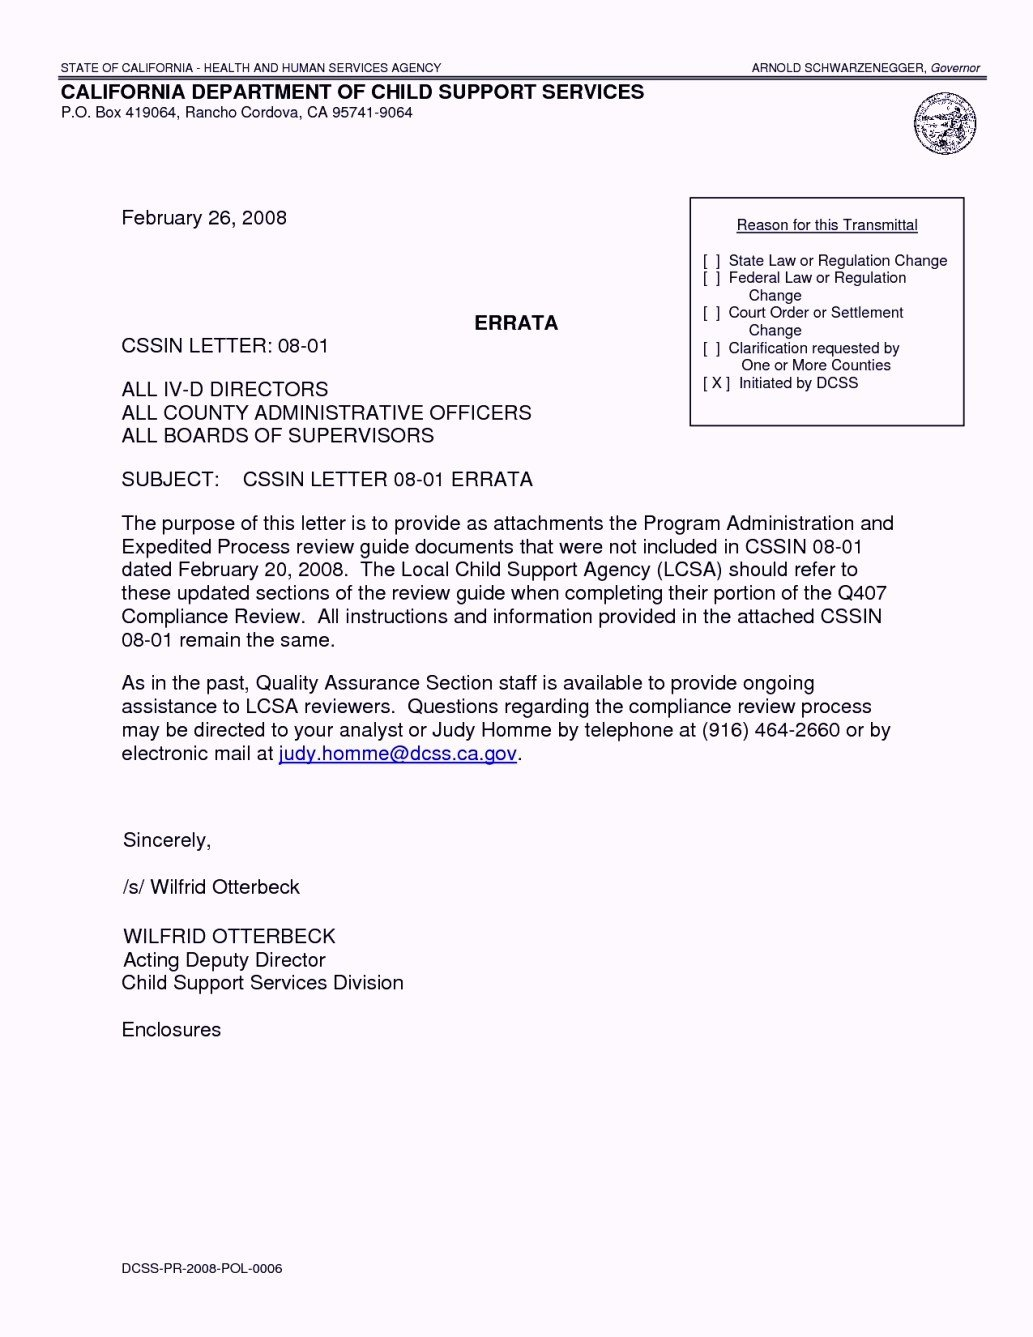 Child Support Agreement Sample Child Support Agreement Letter